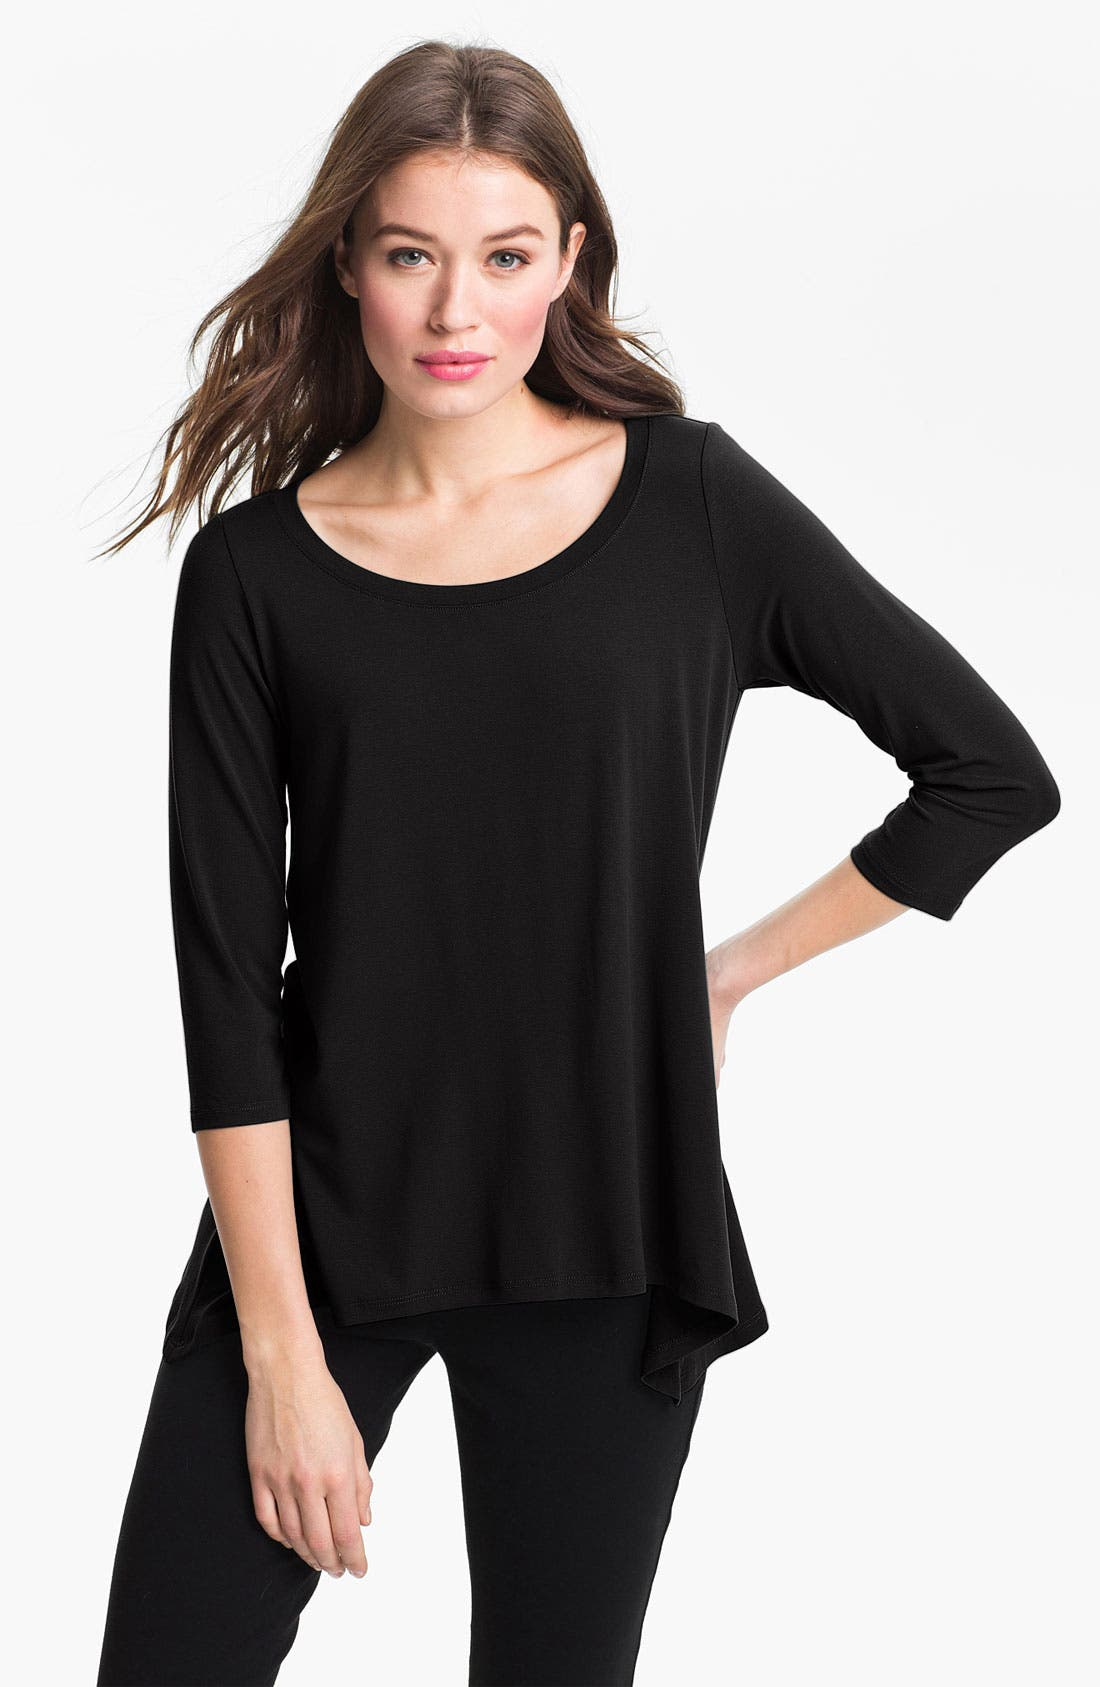 Main Image - Eileen Fisher Scoop Neck Three Quarter Sleeve Top (Regular & Petite) (Online Exclusive)